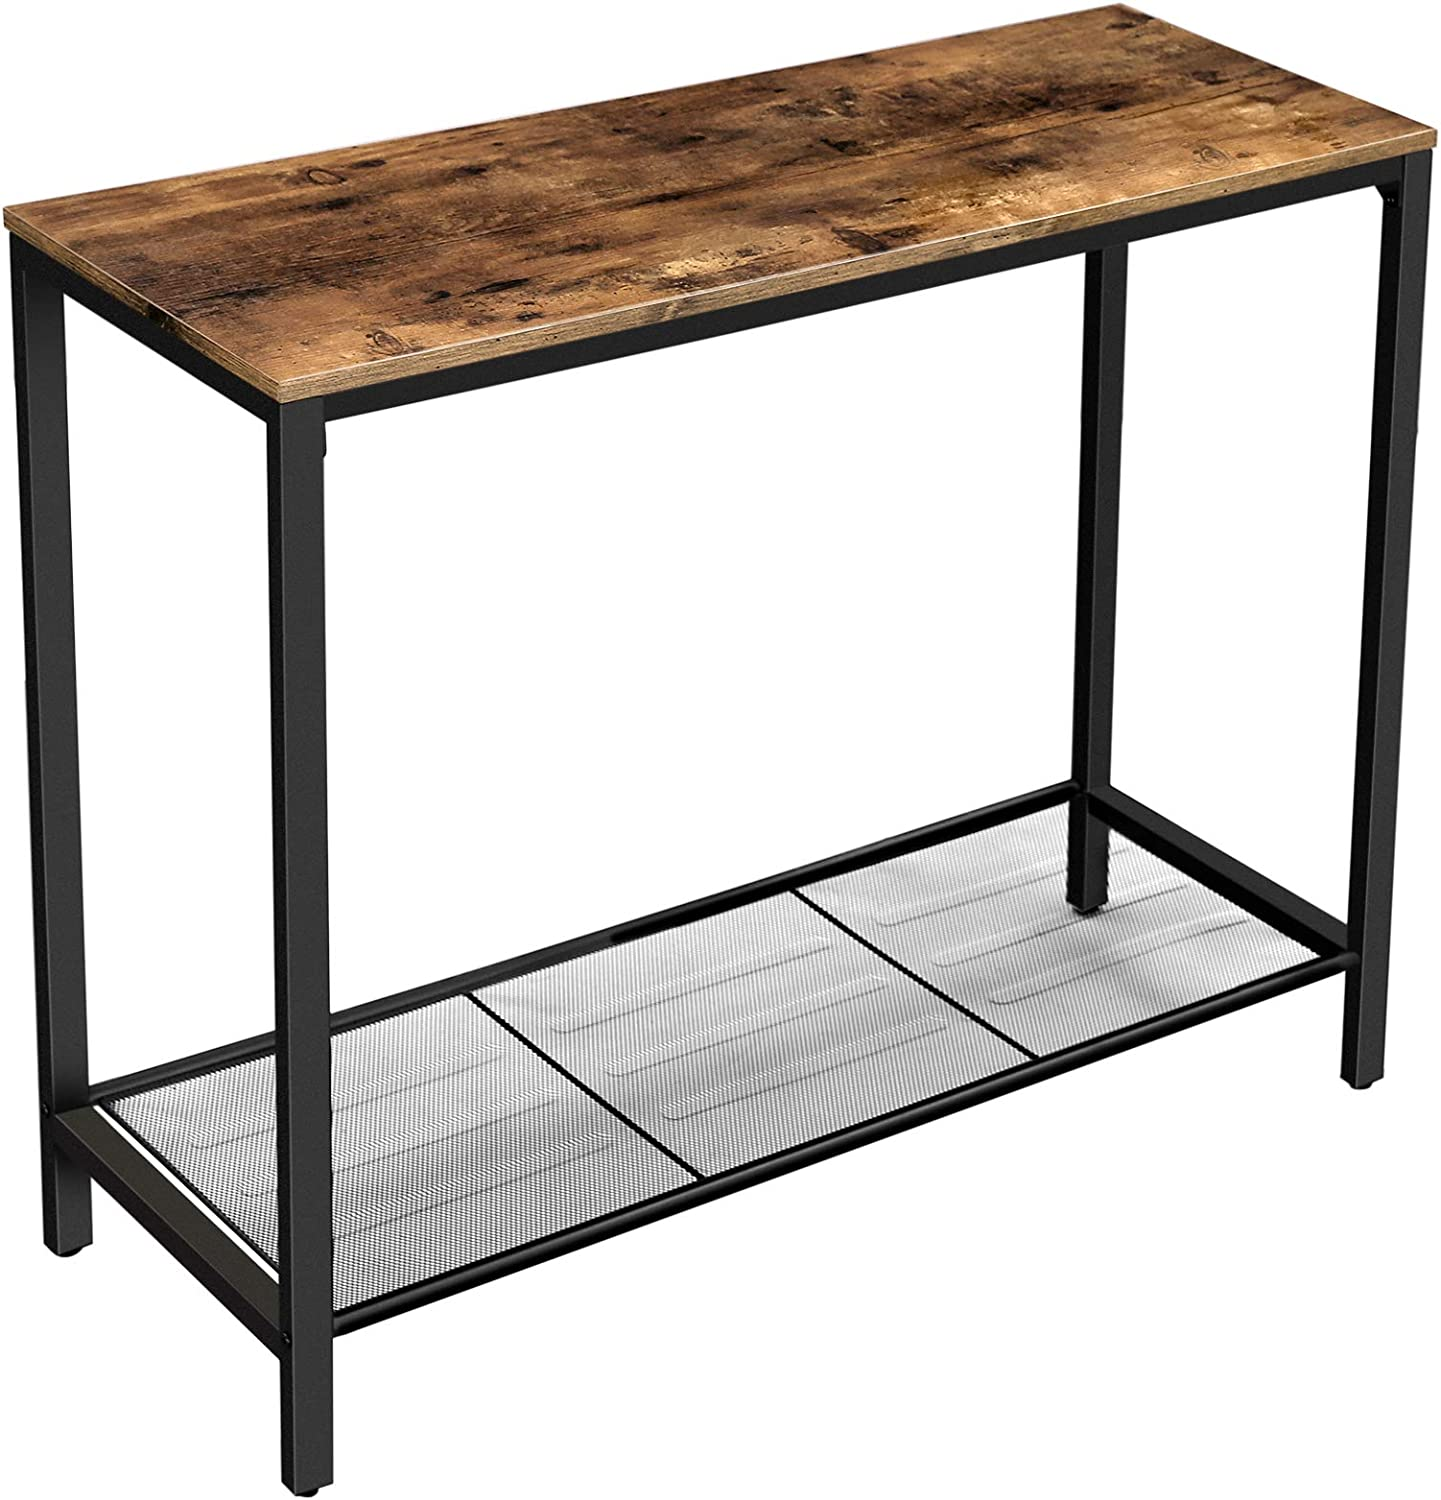 Amazon Com Vasagle Console Table Sofa Table Entryway Table With Metal Mesh Shelf 39 4 X 13 8 X 31 5 Inches For Hallway Entryway Living Room Industrial Rustic Brown Ulnt86x Kitchen Dining